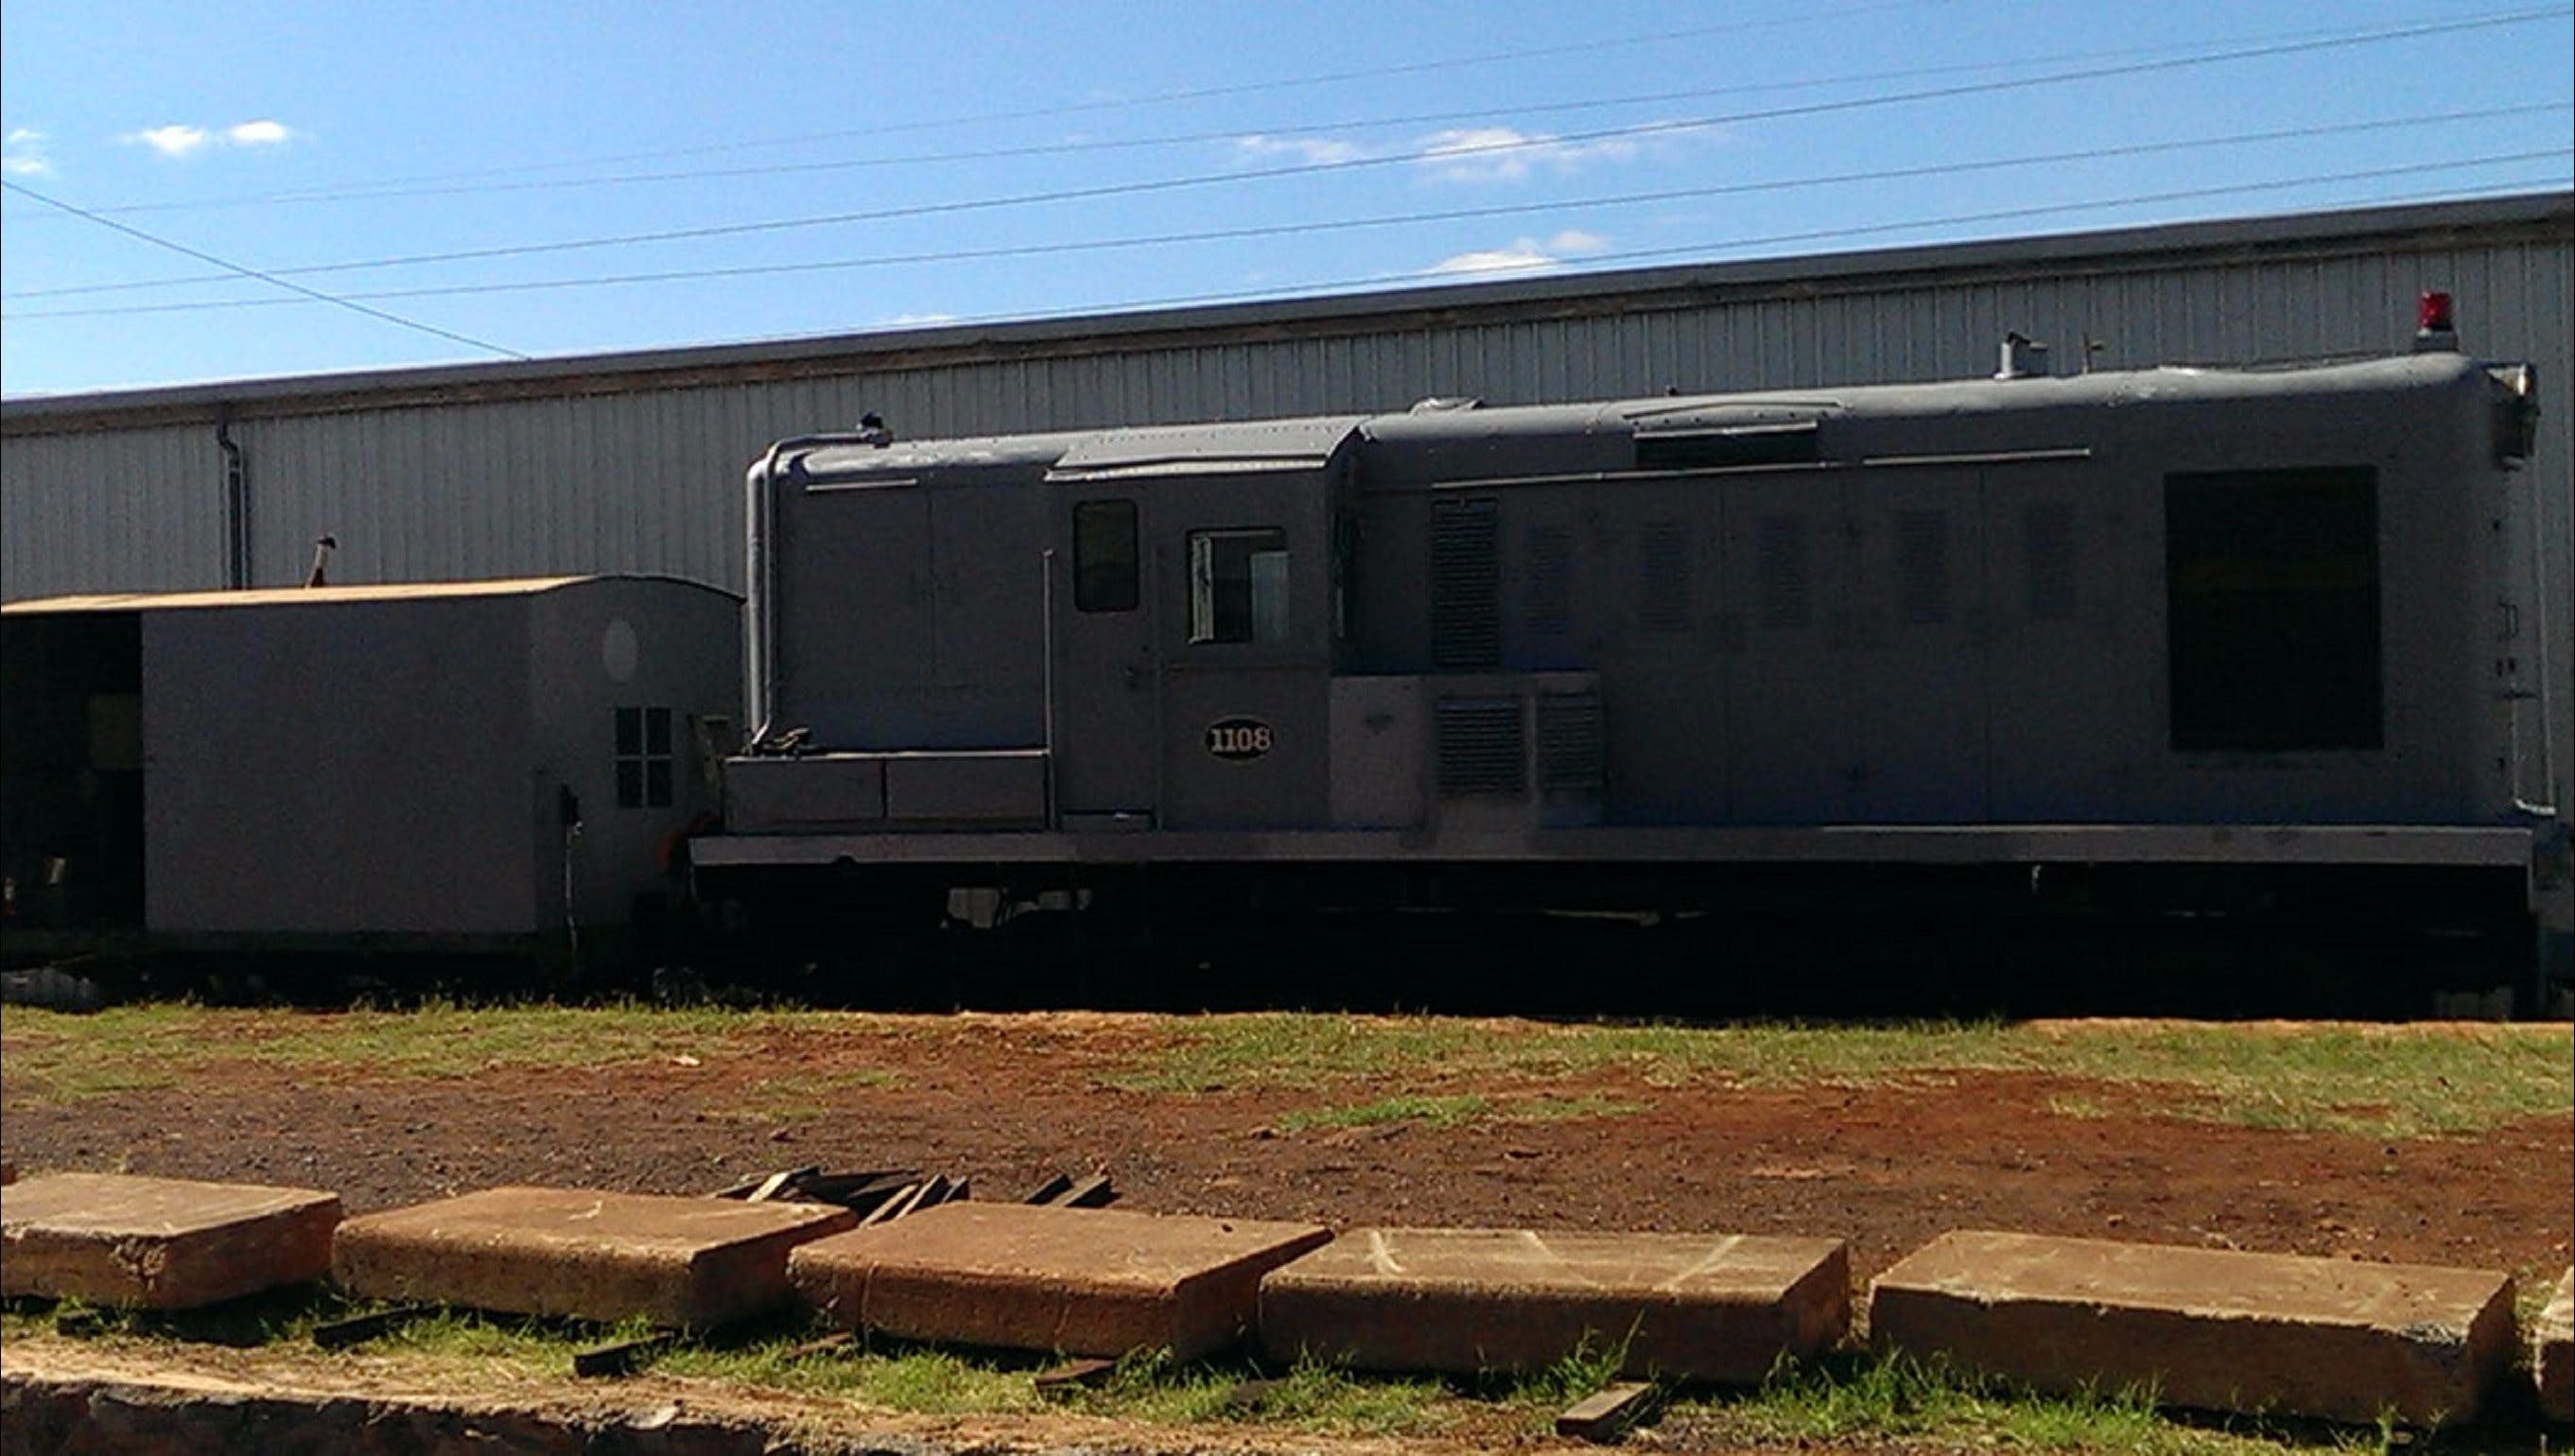 Loopline Railway and Museum - Accommodation Search